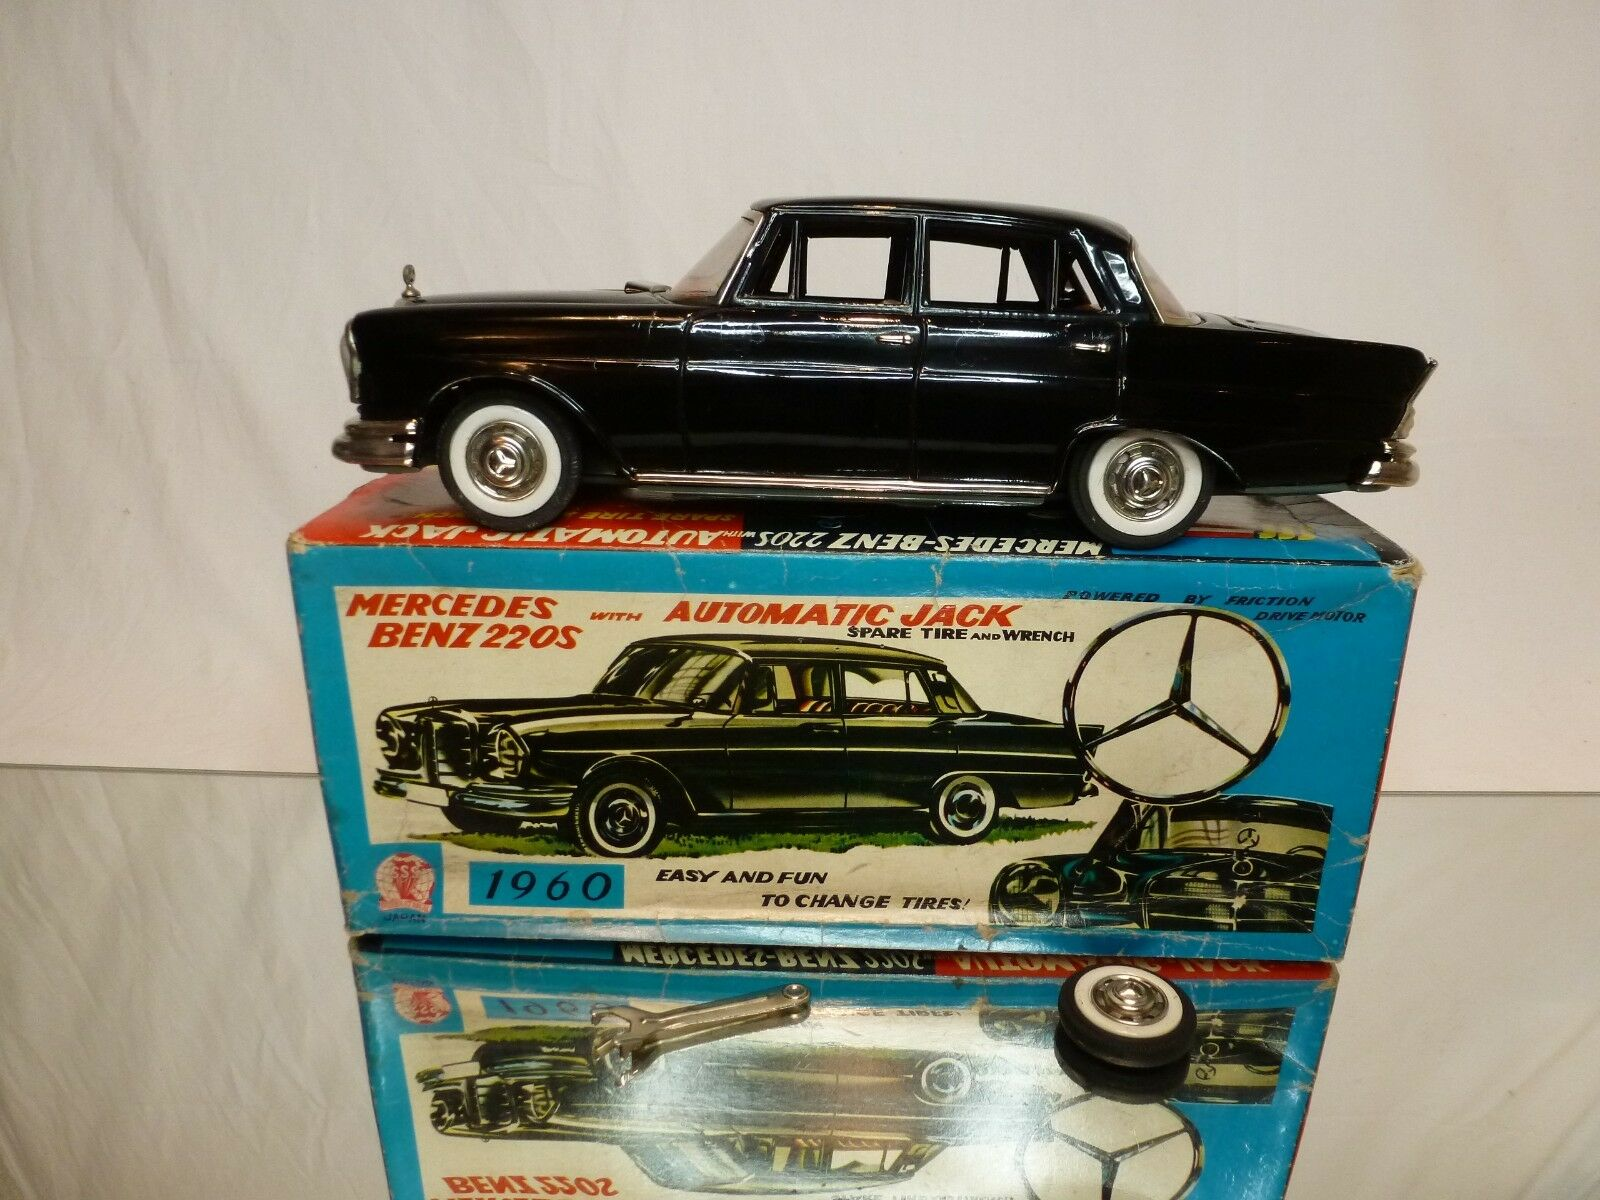 SSS QUALITY TOYS S1317 TIN TOY MERCEDES BENZ 220S - FRICTION - GOOD IN BOX -RARE